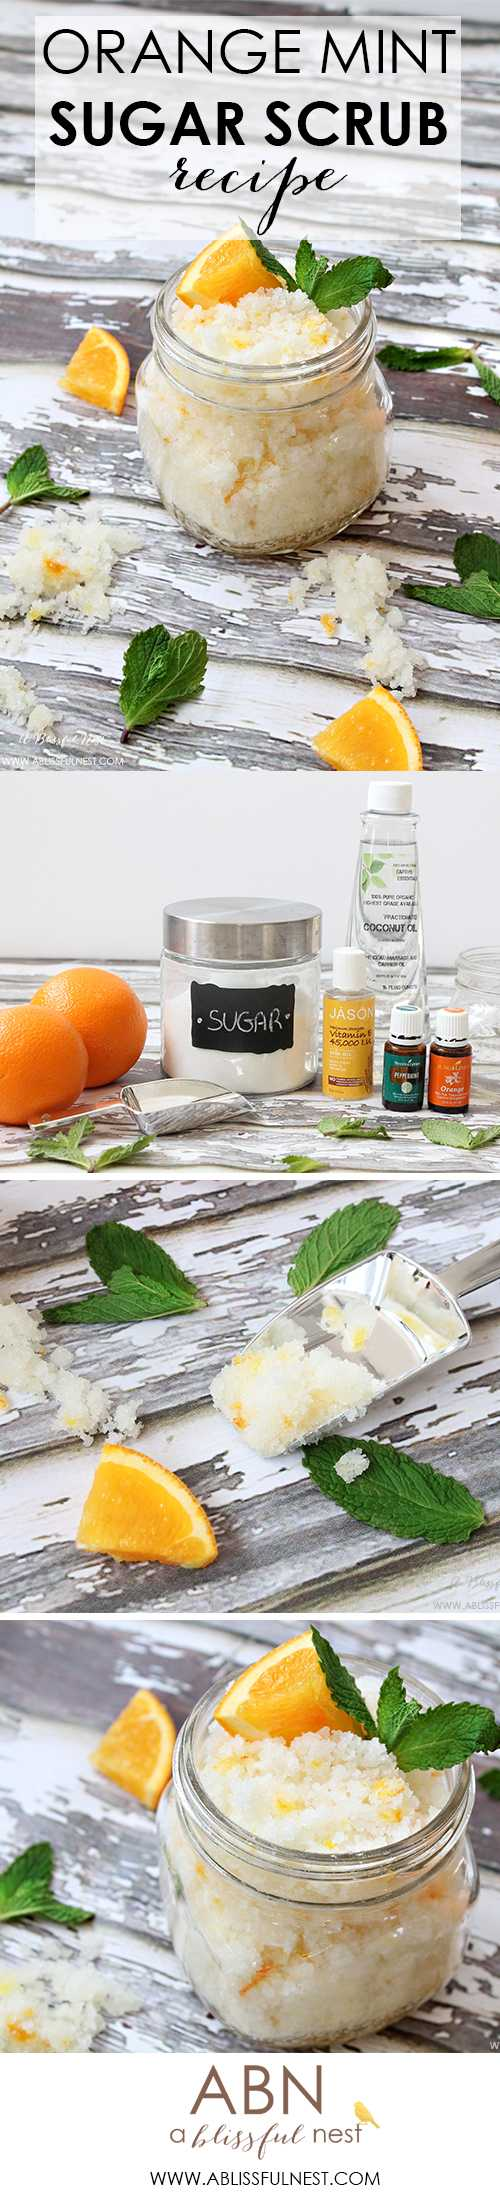 A simple recipe to make orange mint sugar scrub. Leaves your skin smooth and soft while exfoliating.